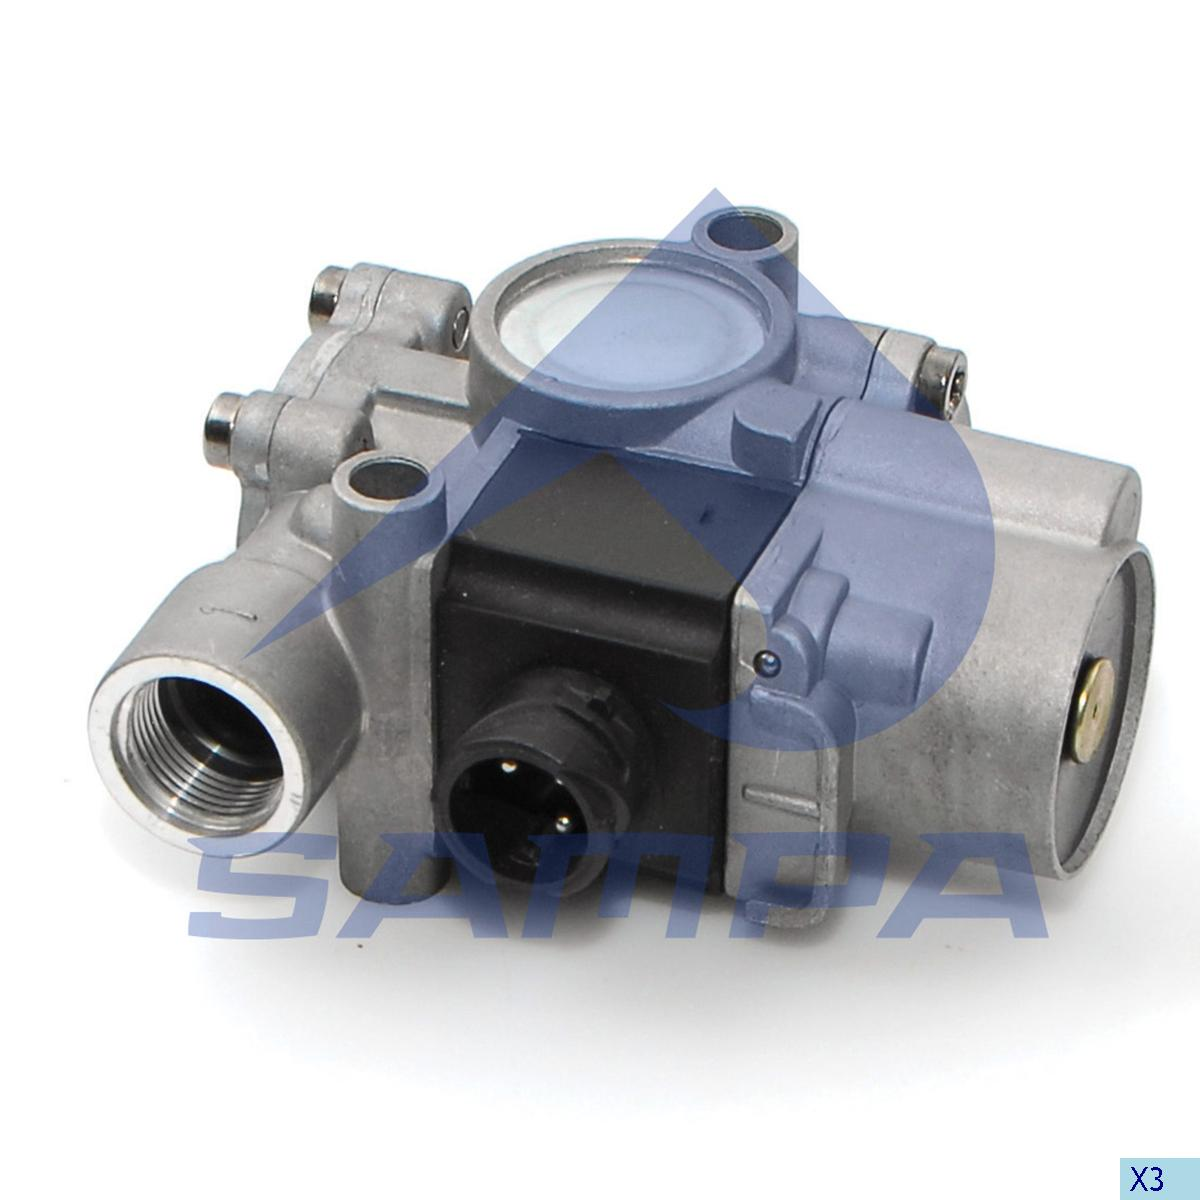 Solenoid Valve, Daf, Compressed Air System